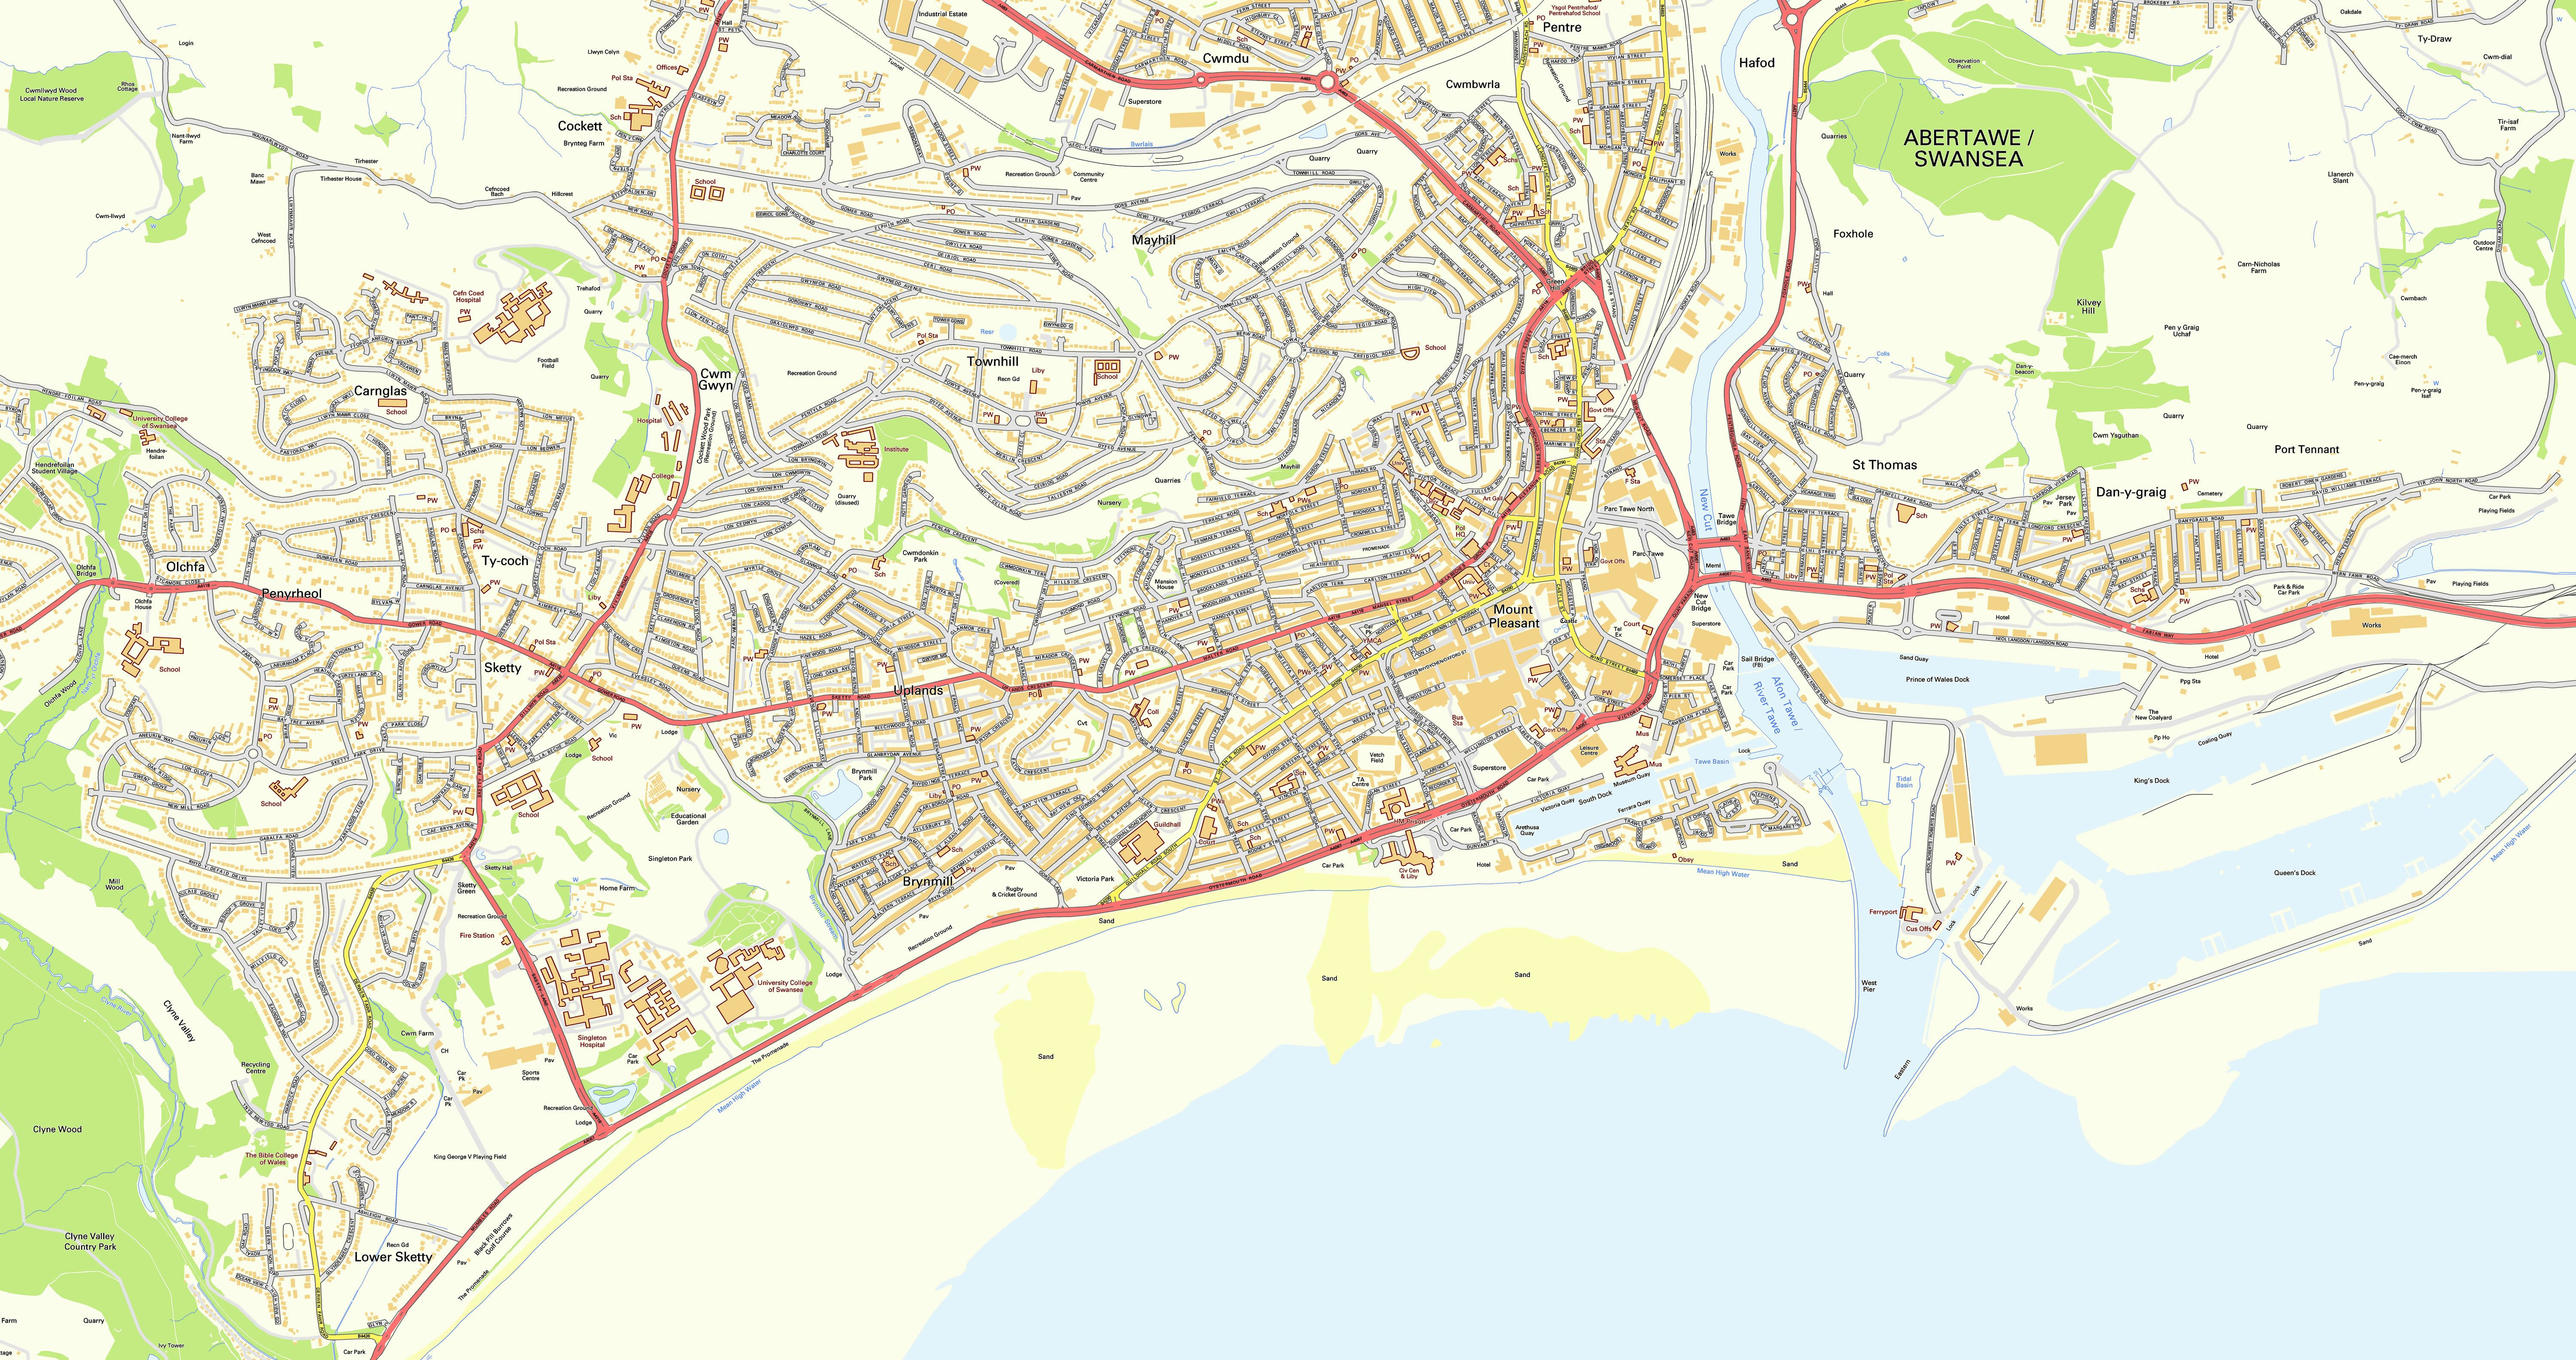 Large Swansea Maps for Free Download and Print HighResolution and